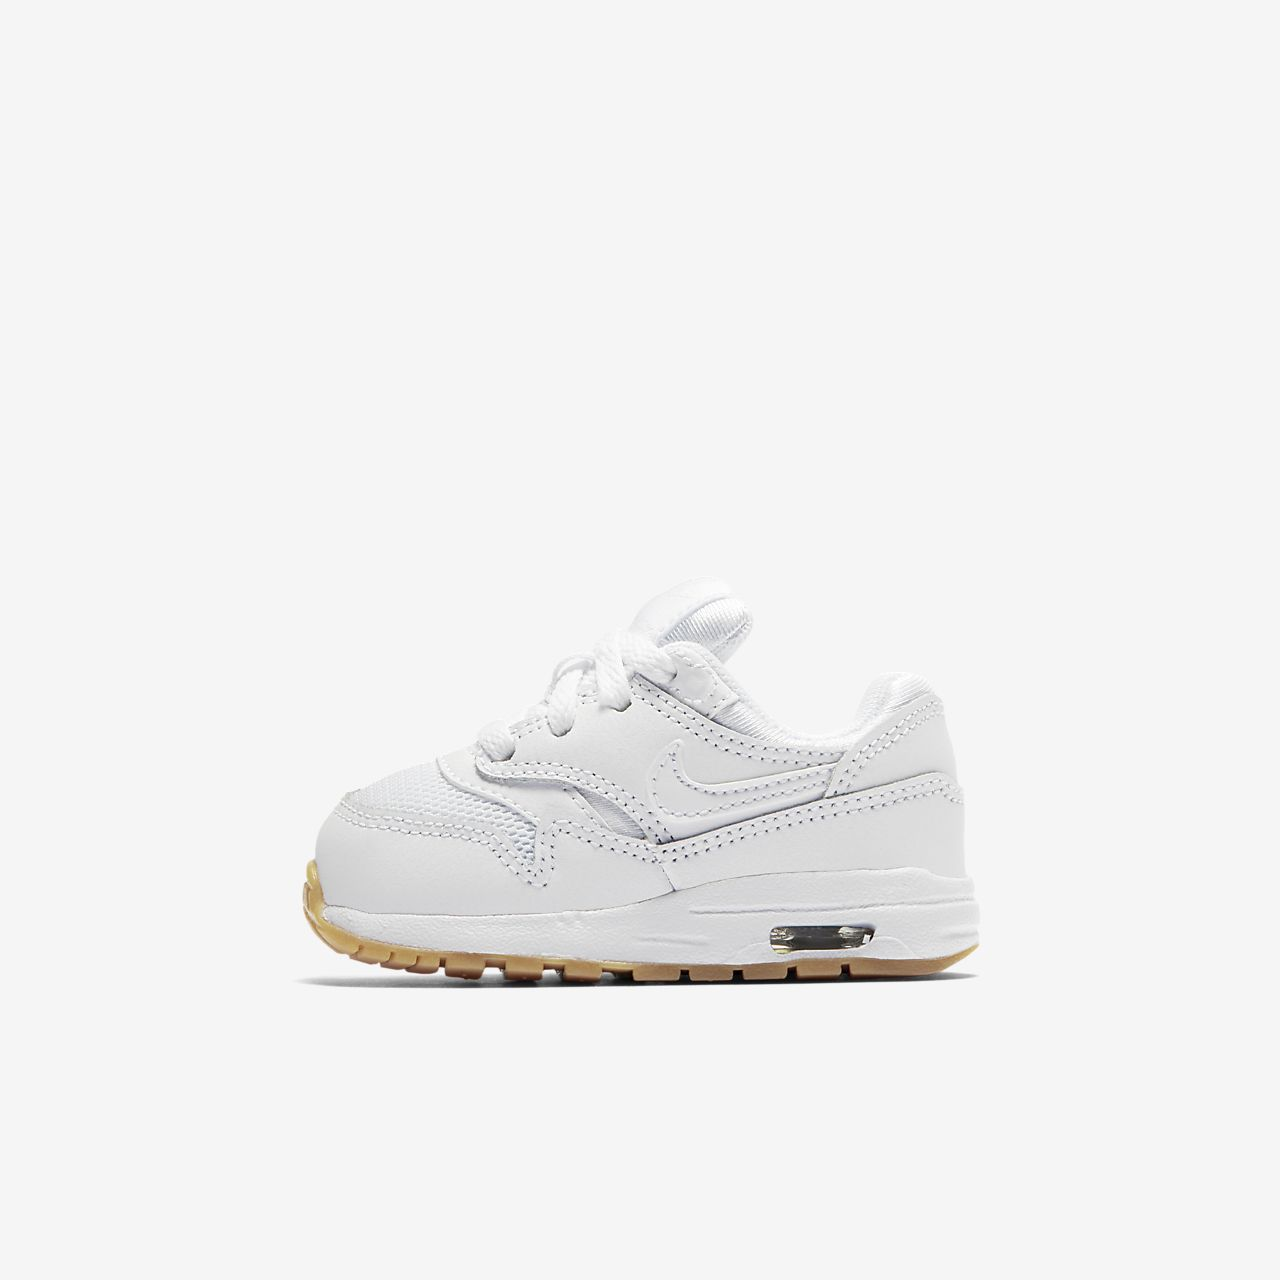 5849d2f18f3481 Nike Air Max 1 Baby   Toddler Shoe. Nike.com NL